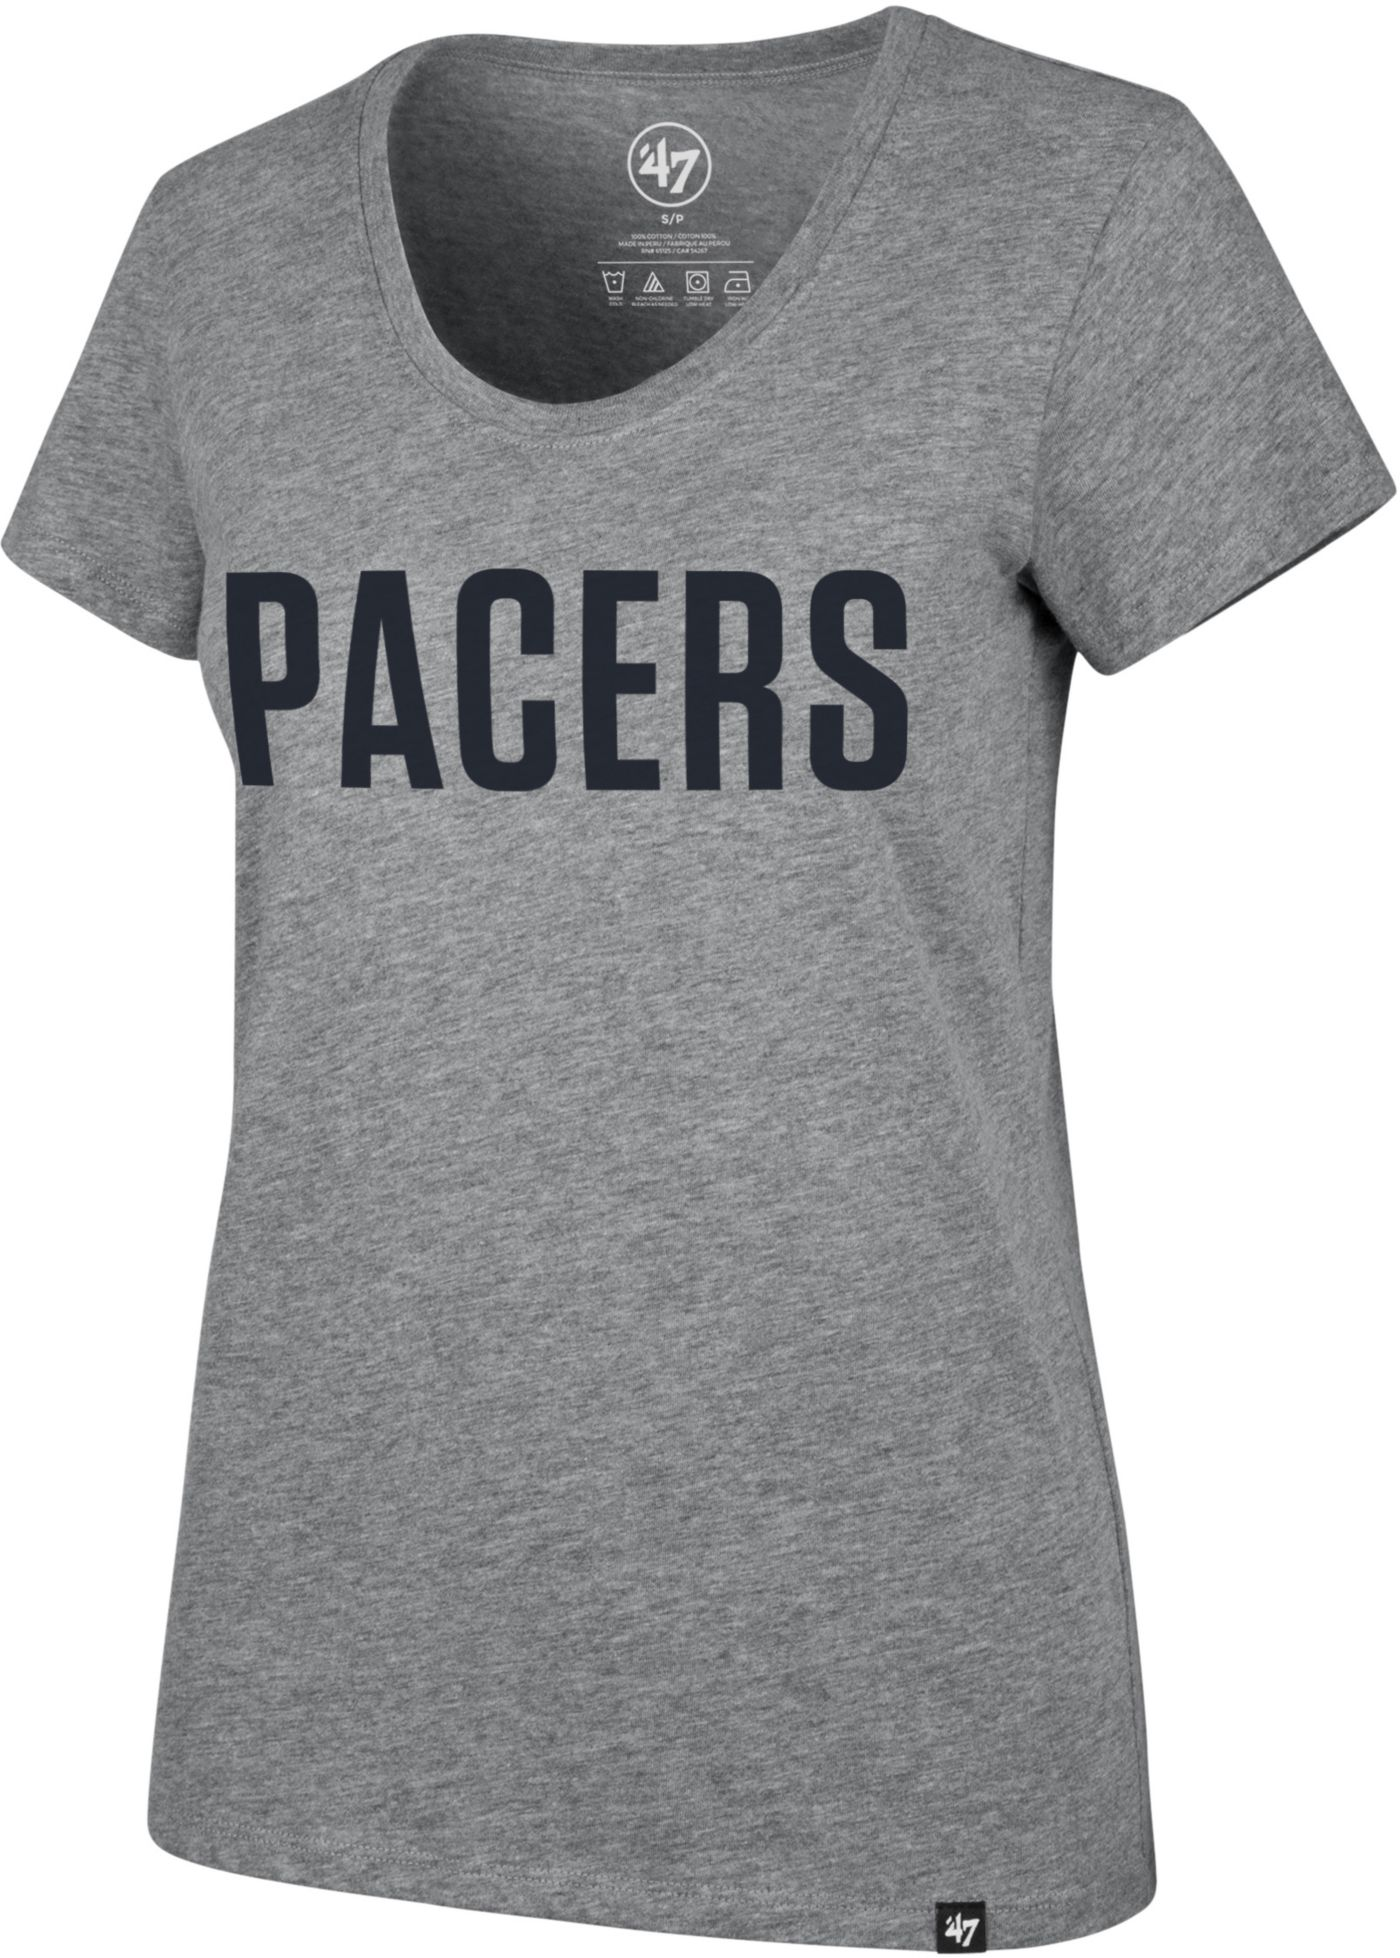 '47 Women's Indiana Pacers Scoop Neck T-Shirt